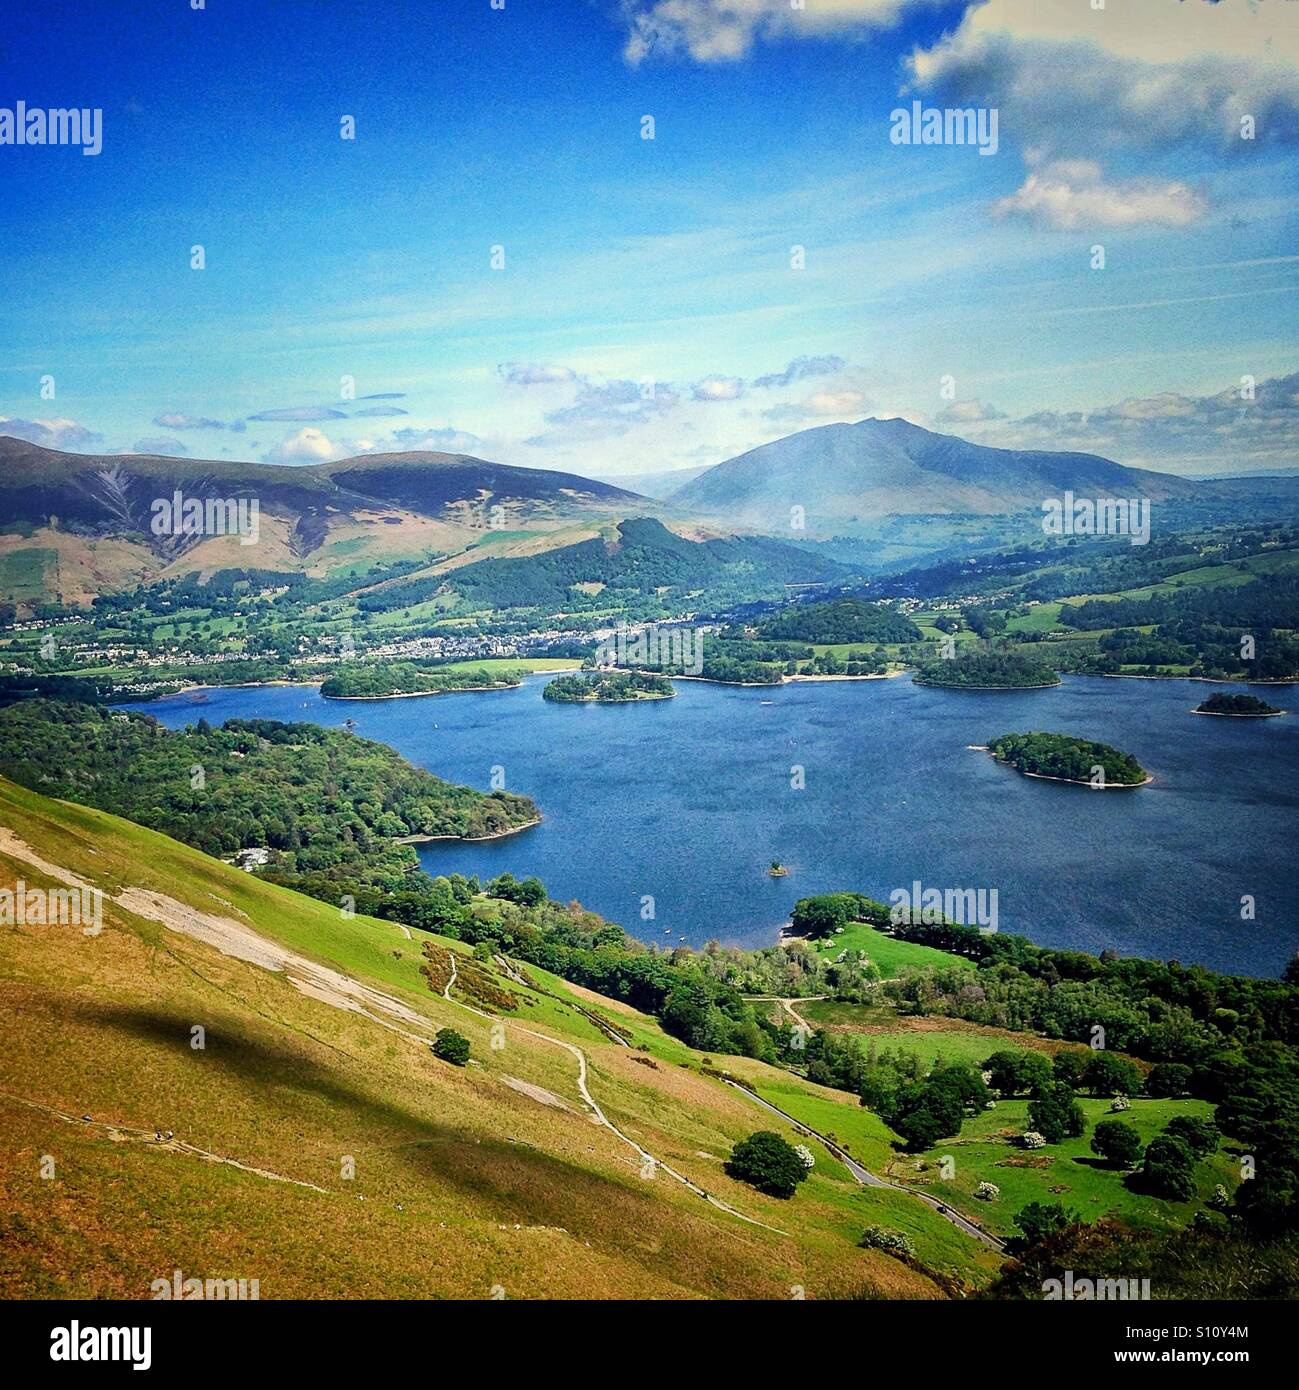 View of Derwentwater from the top of Catbells - Stock Image